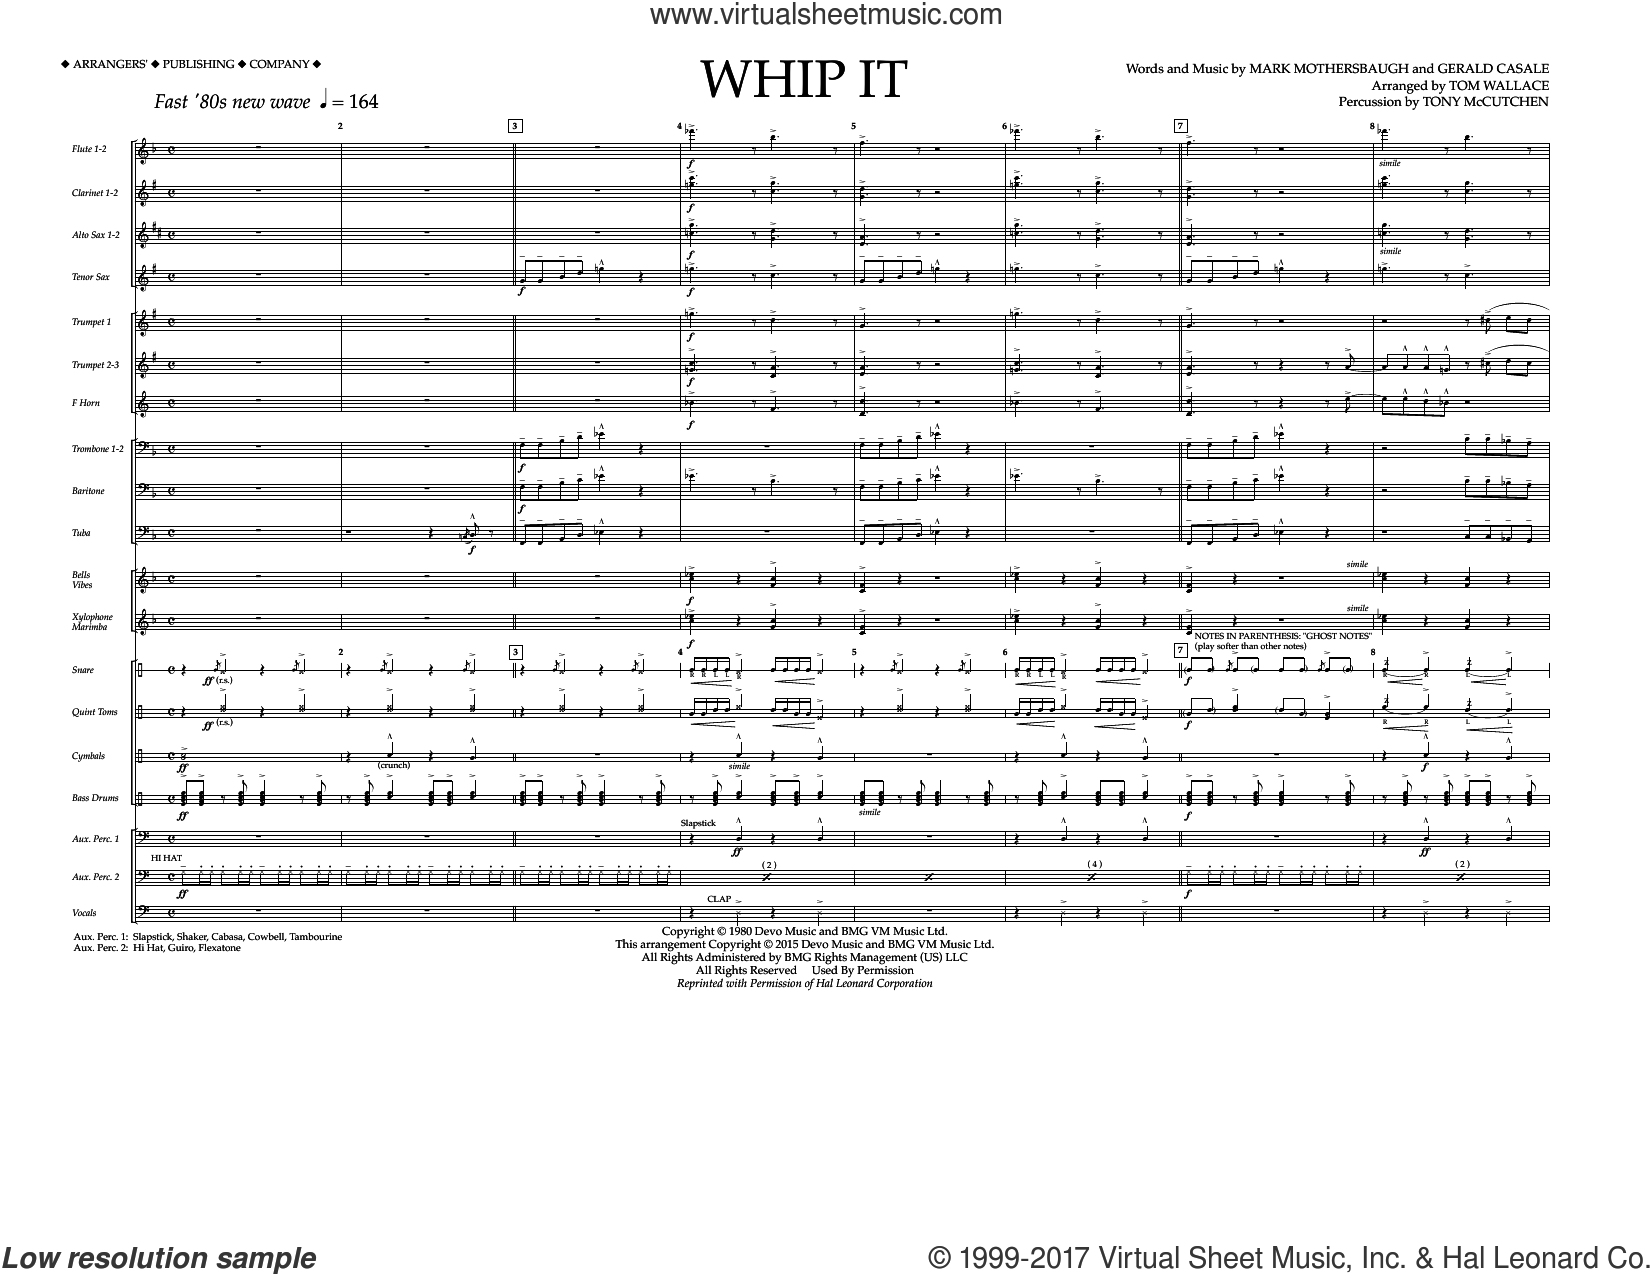 Whip It (COMPLETE) sheet music for marching band by Tom Wallace, Devo, Gerald Casale and Mark Mothersbaugh, intermediate. Score Image Preview.